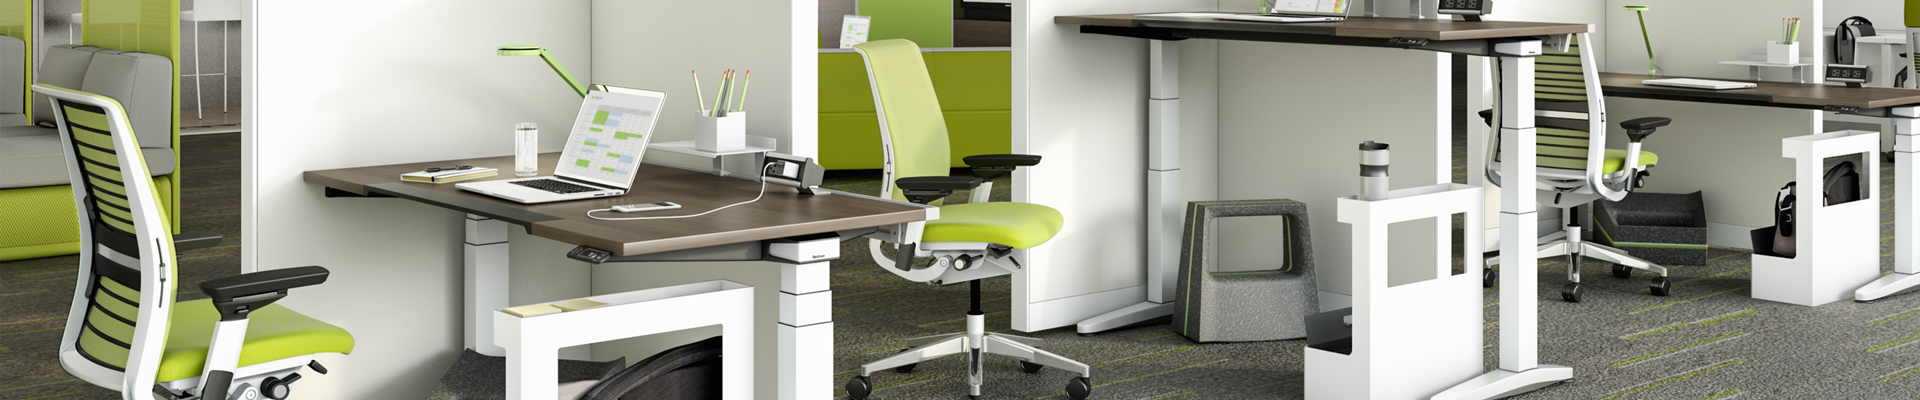 Office Furniture Steelcase Cubicle Systems